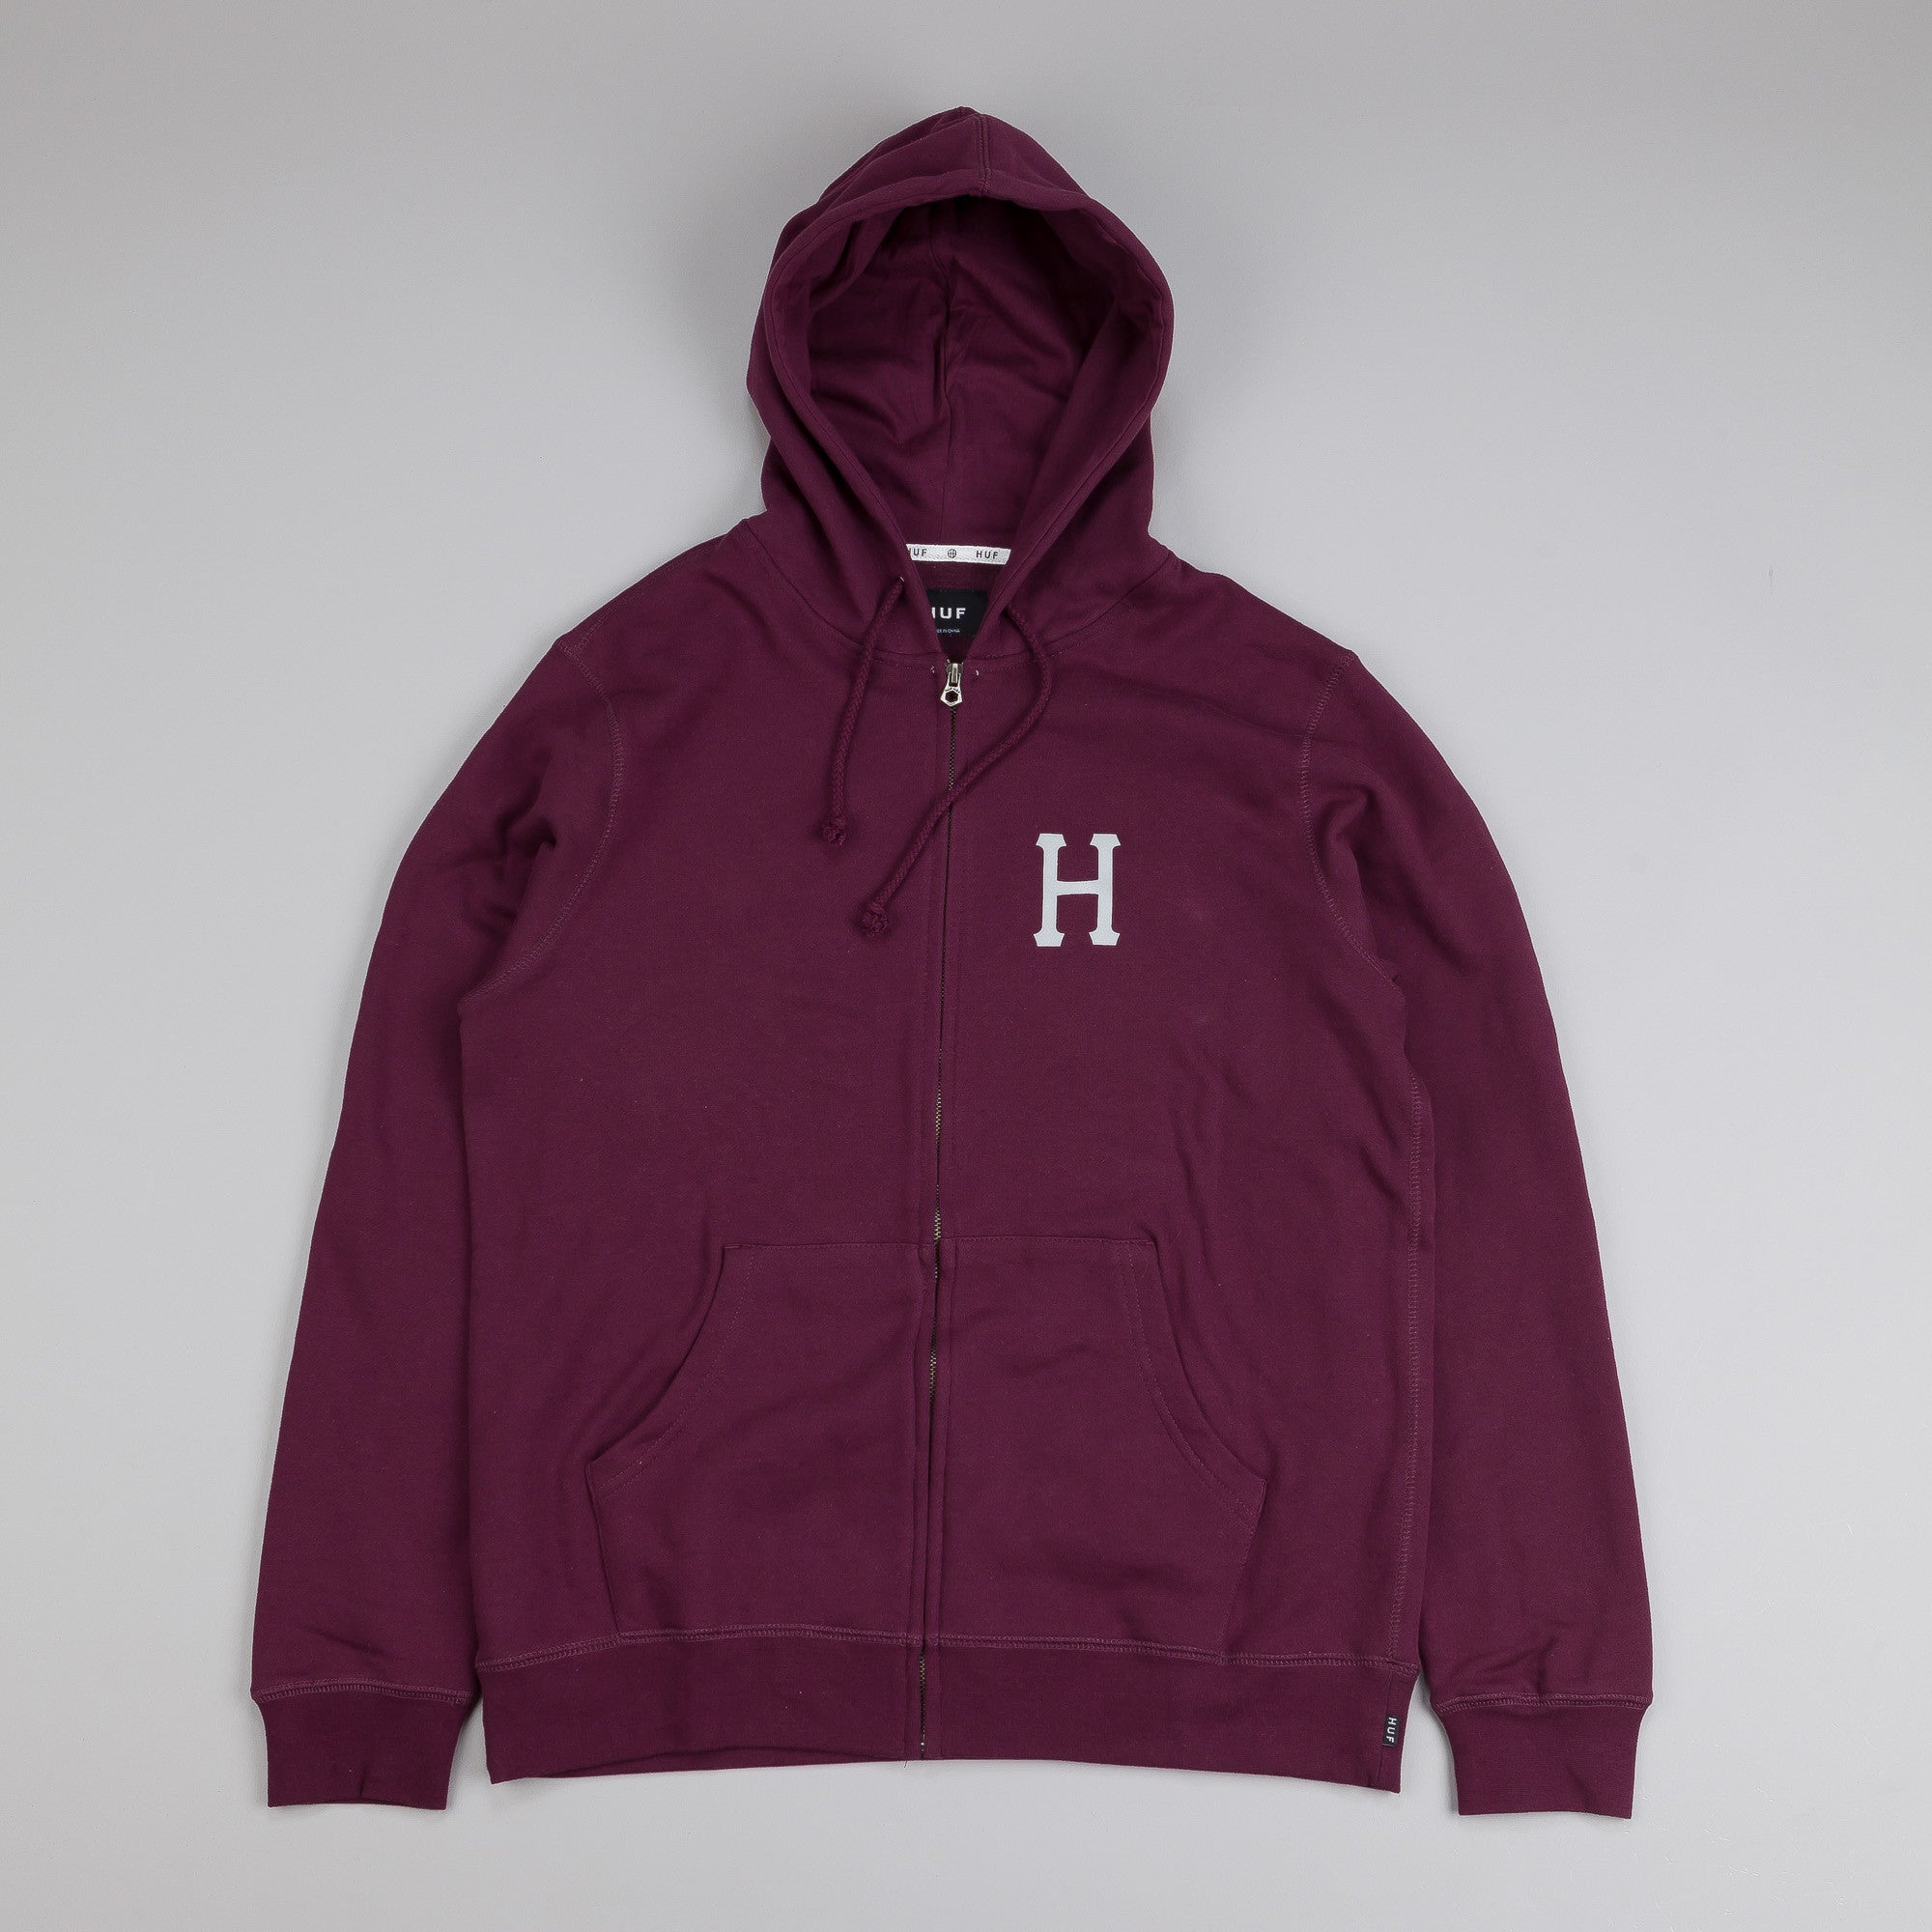 HUF Classic H Zip Up Hooded Sweatshirt Wine